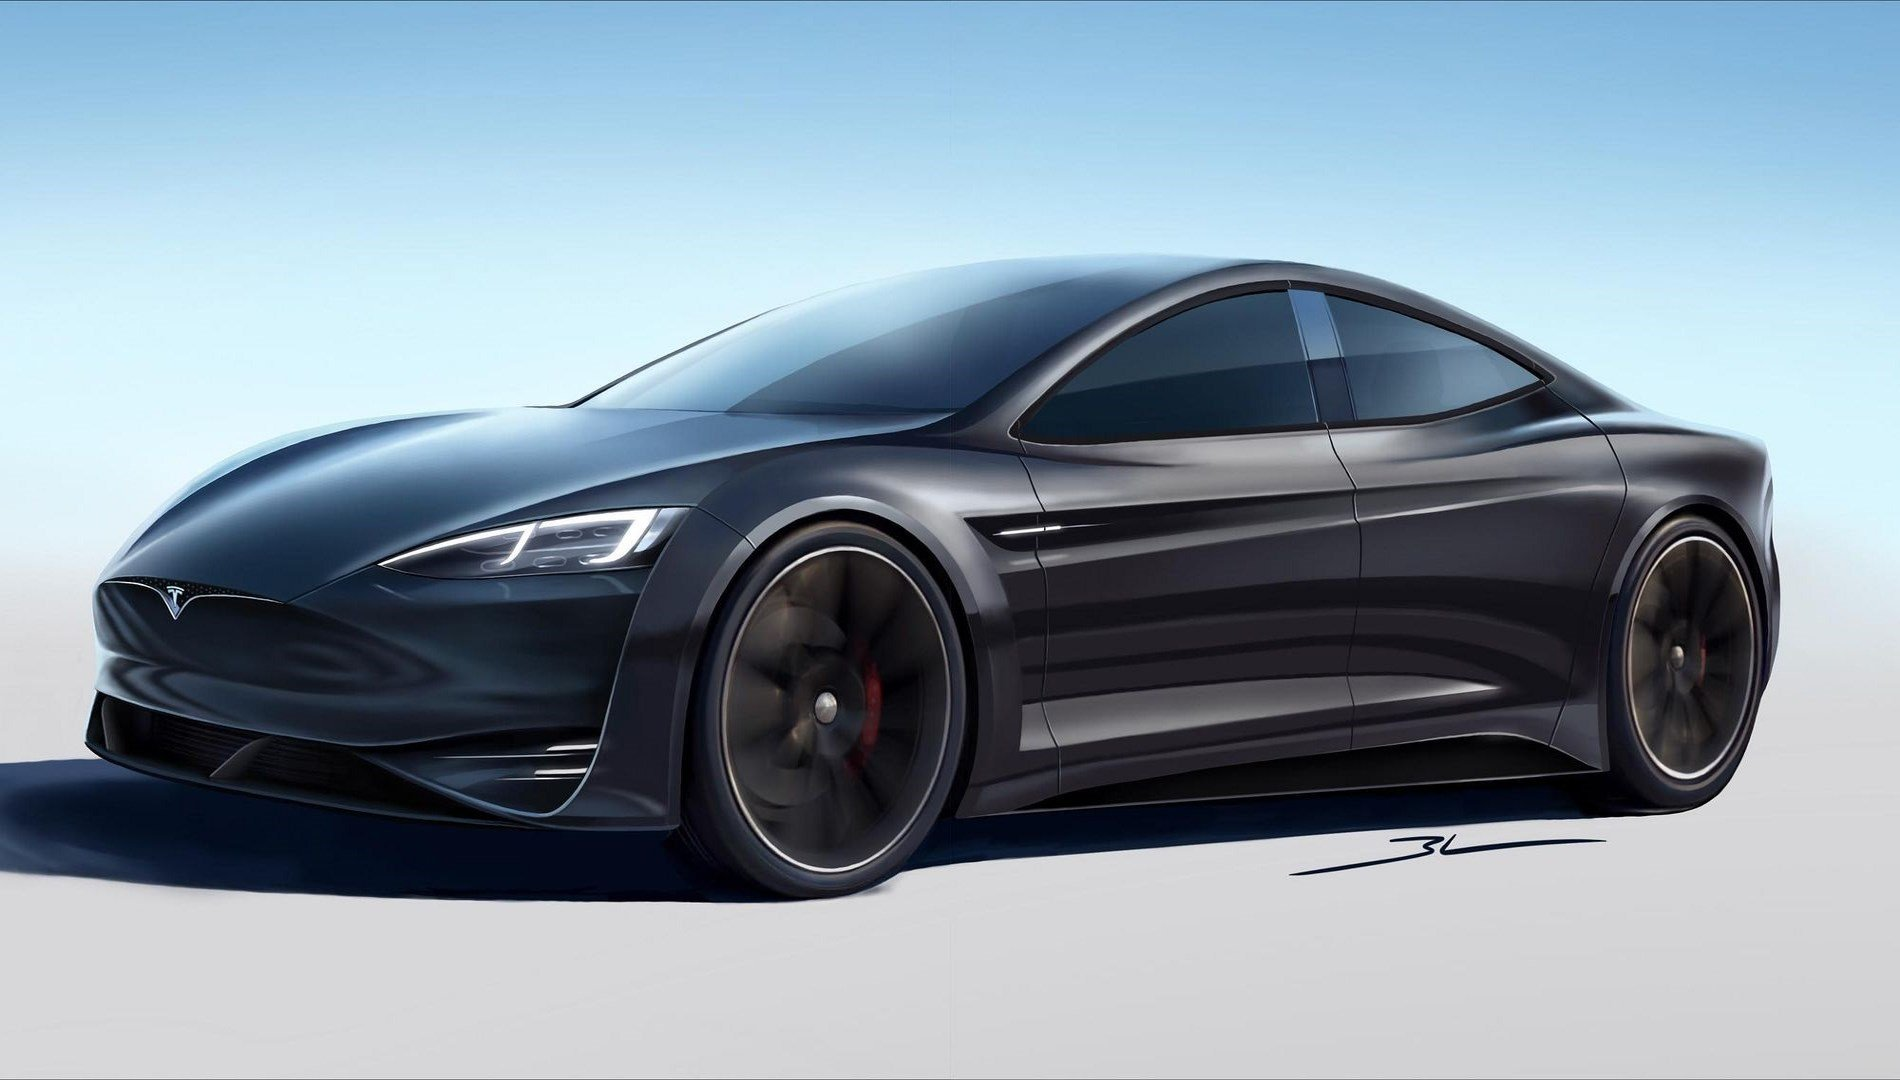 Recent Rumors Suggest That 2021 Tesla Model S/X Refresh Could Come As Early As March